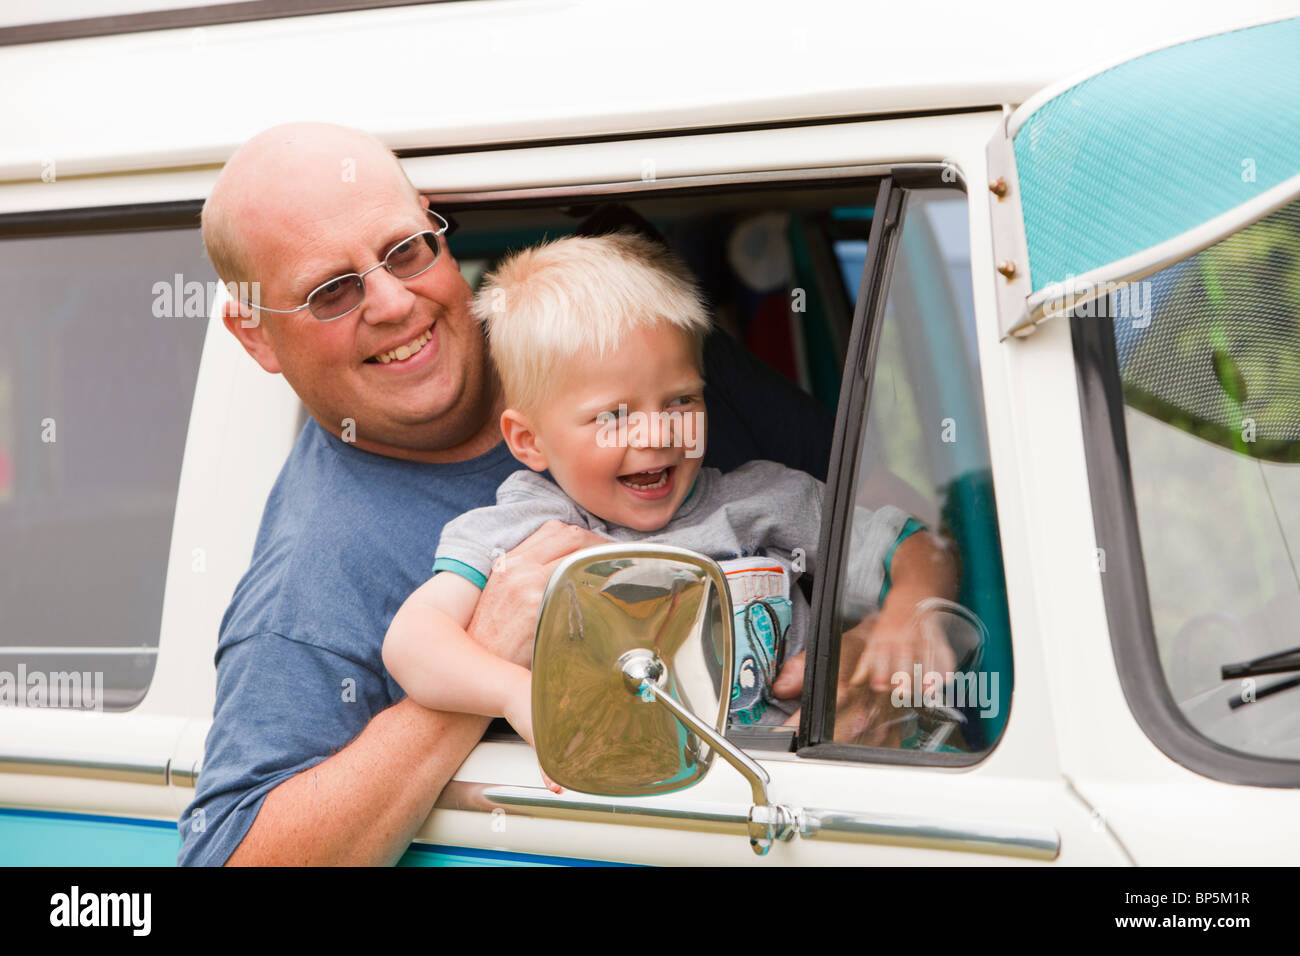 Fathers And Sons VW >> A Father And Son In An Old Restored Vw Camper Van Stock